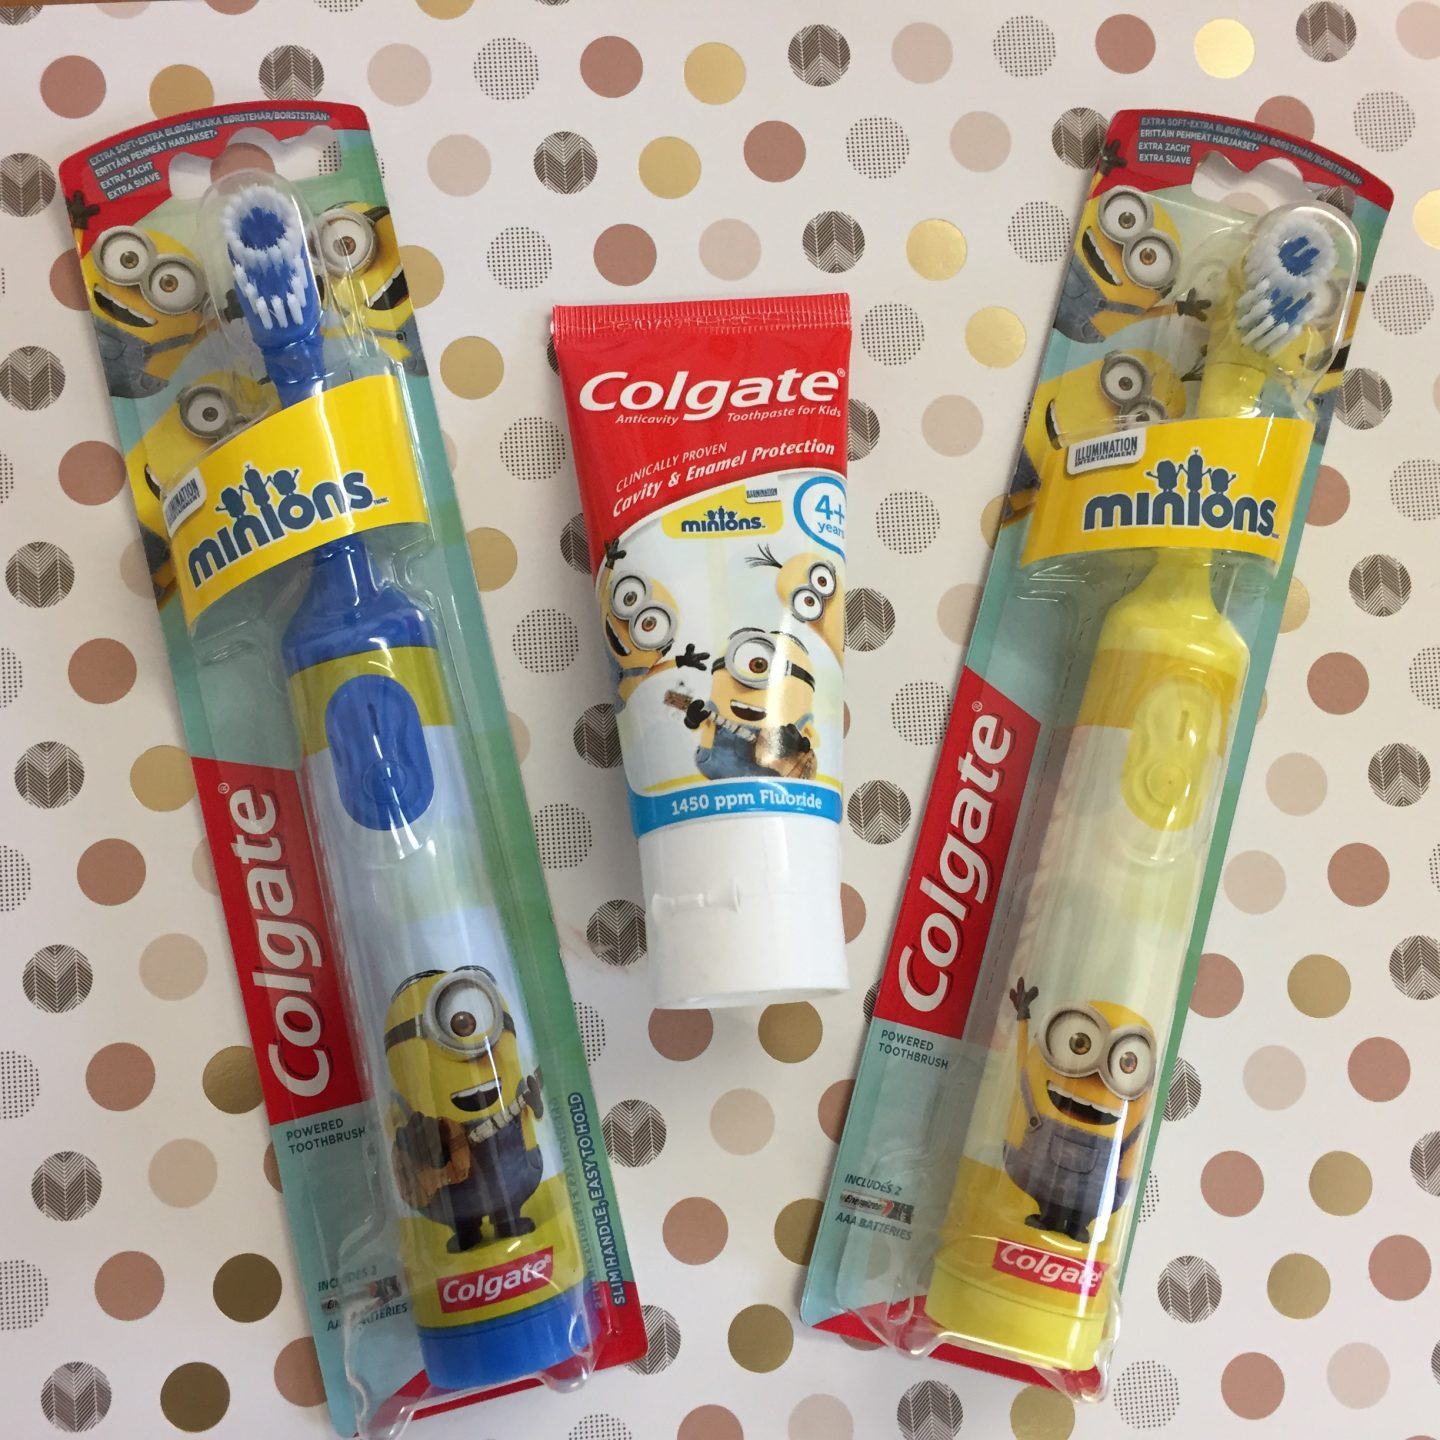 Colgate Minions tooth brush products